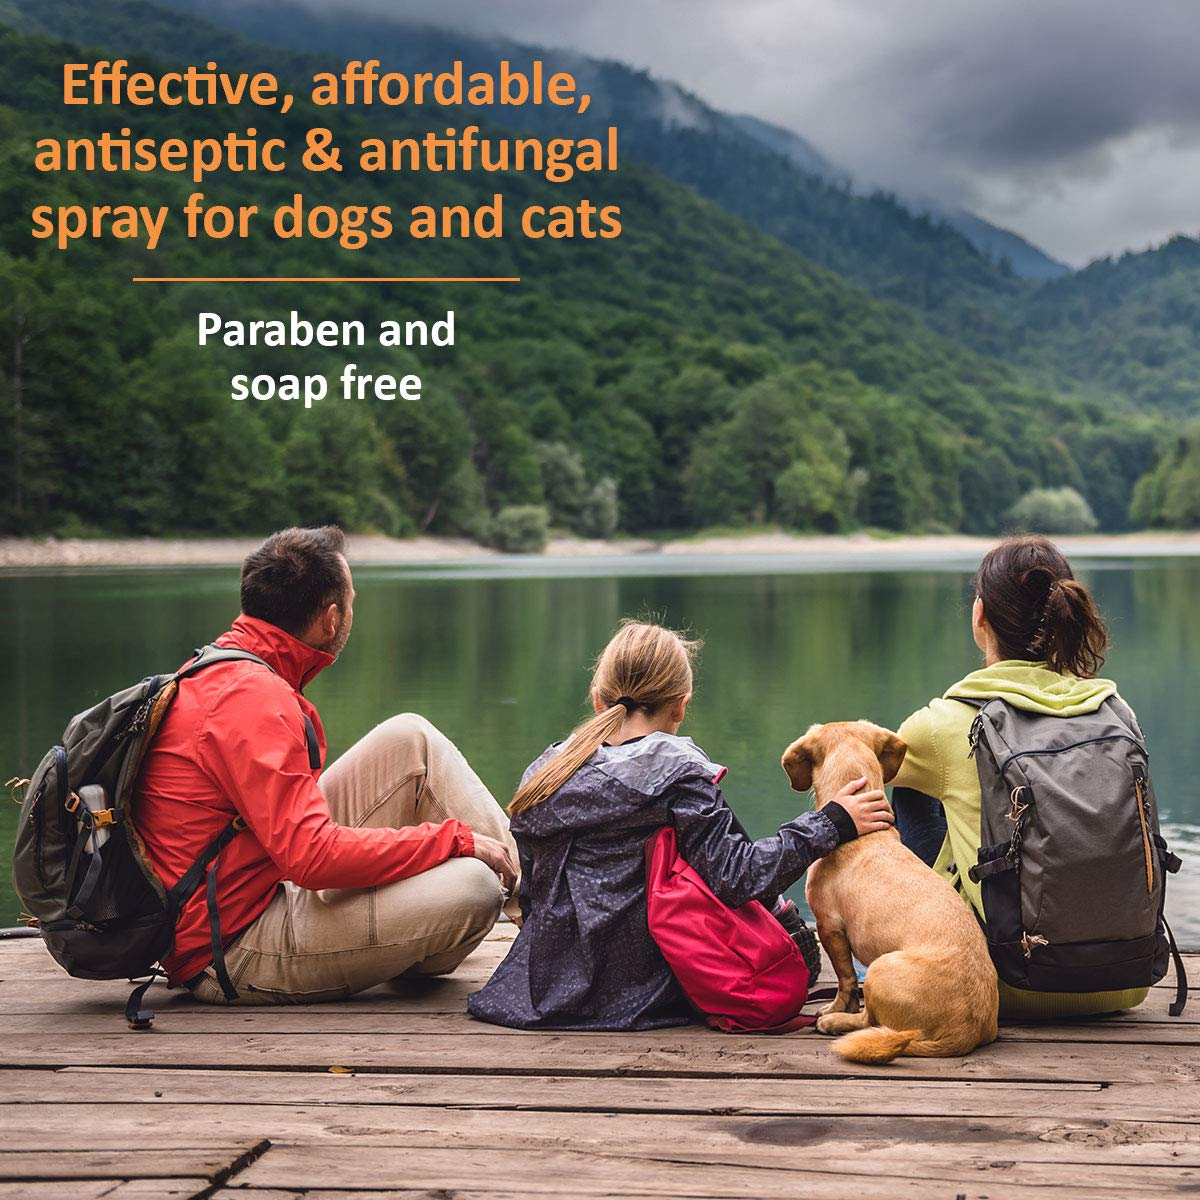 Veterinary Clinical Care Antiseptic and Antifungal Spray for Dogs and Cats – Medicated Topical Spray Treatment for Fungal and Bacterial Skin Infections in Dogs and Cats, Fast Acting, (8 oz Bottle)